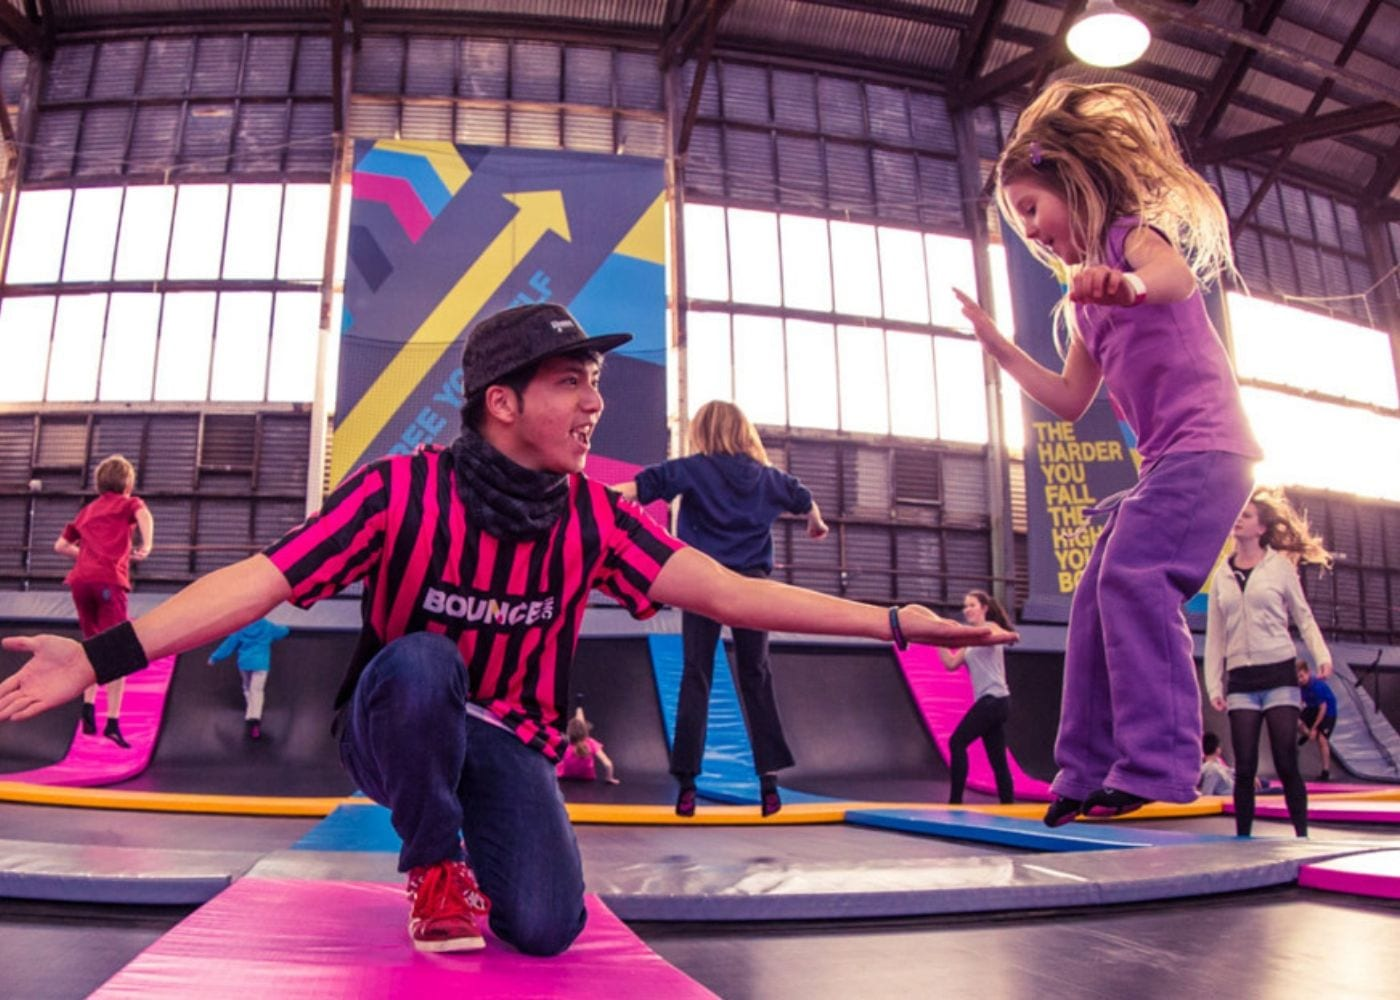 Bouncing off the walls: trampolining classes in Singapore for kids